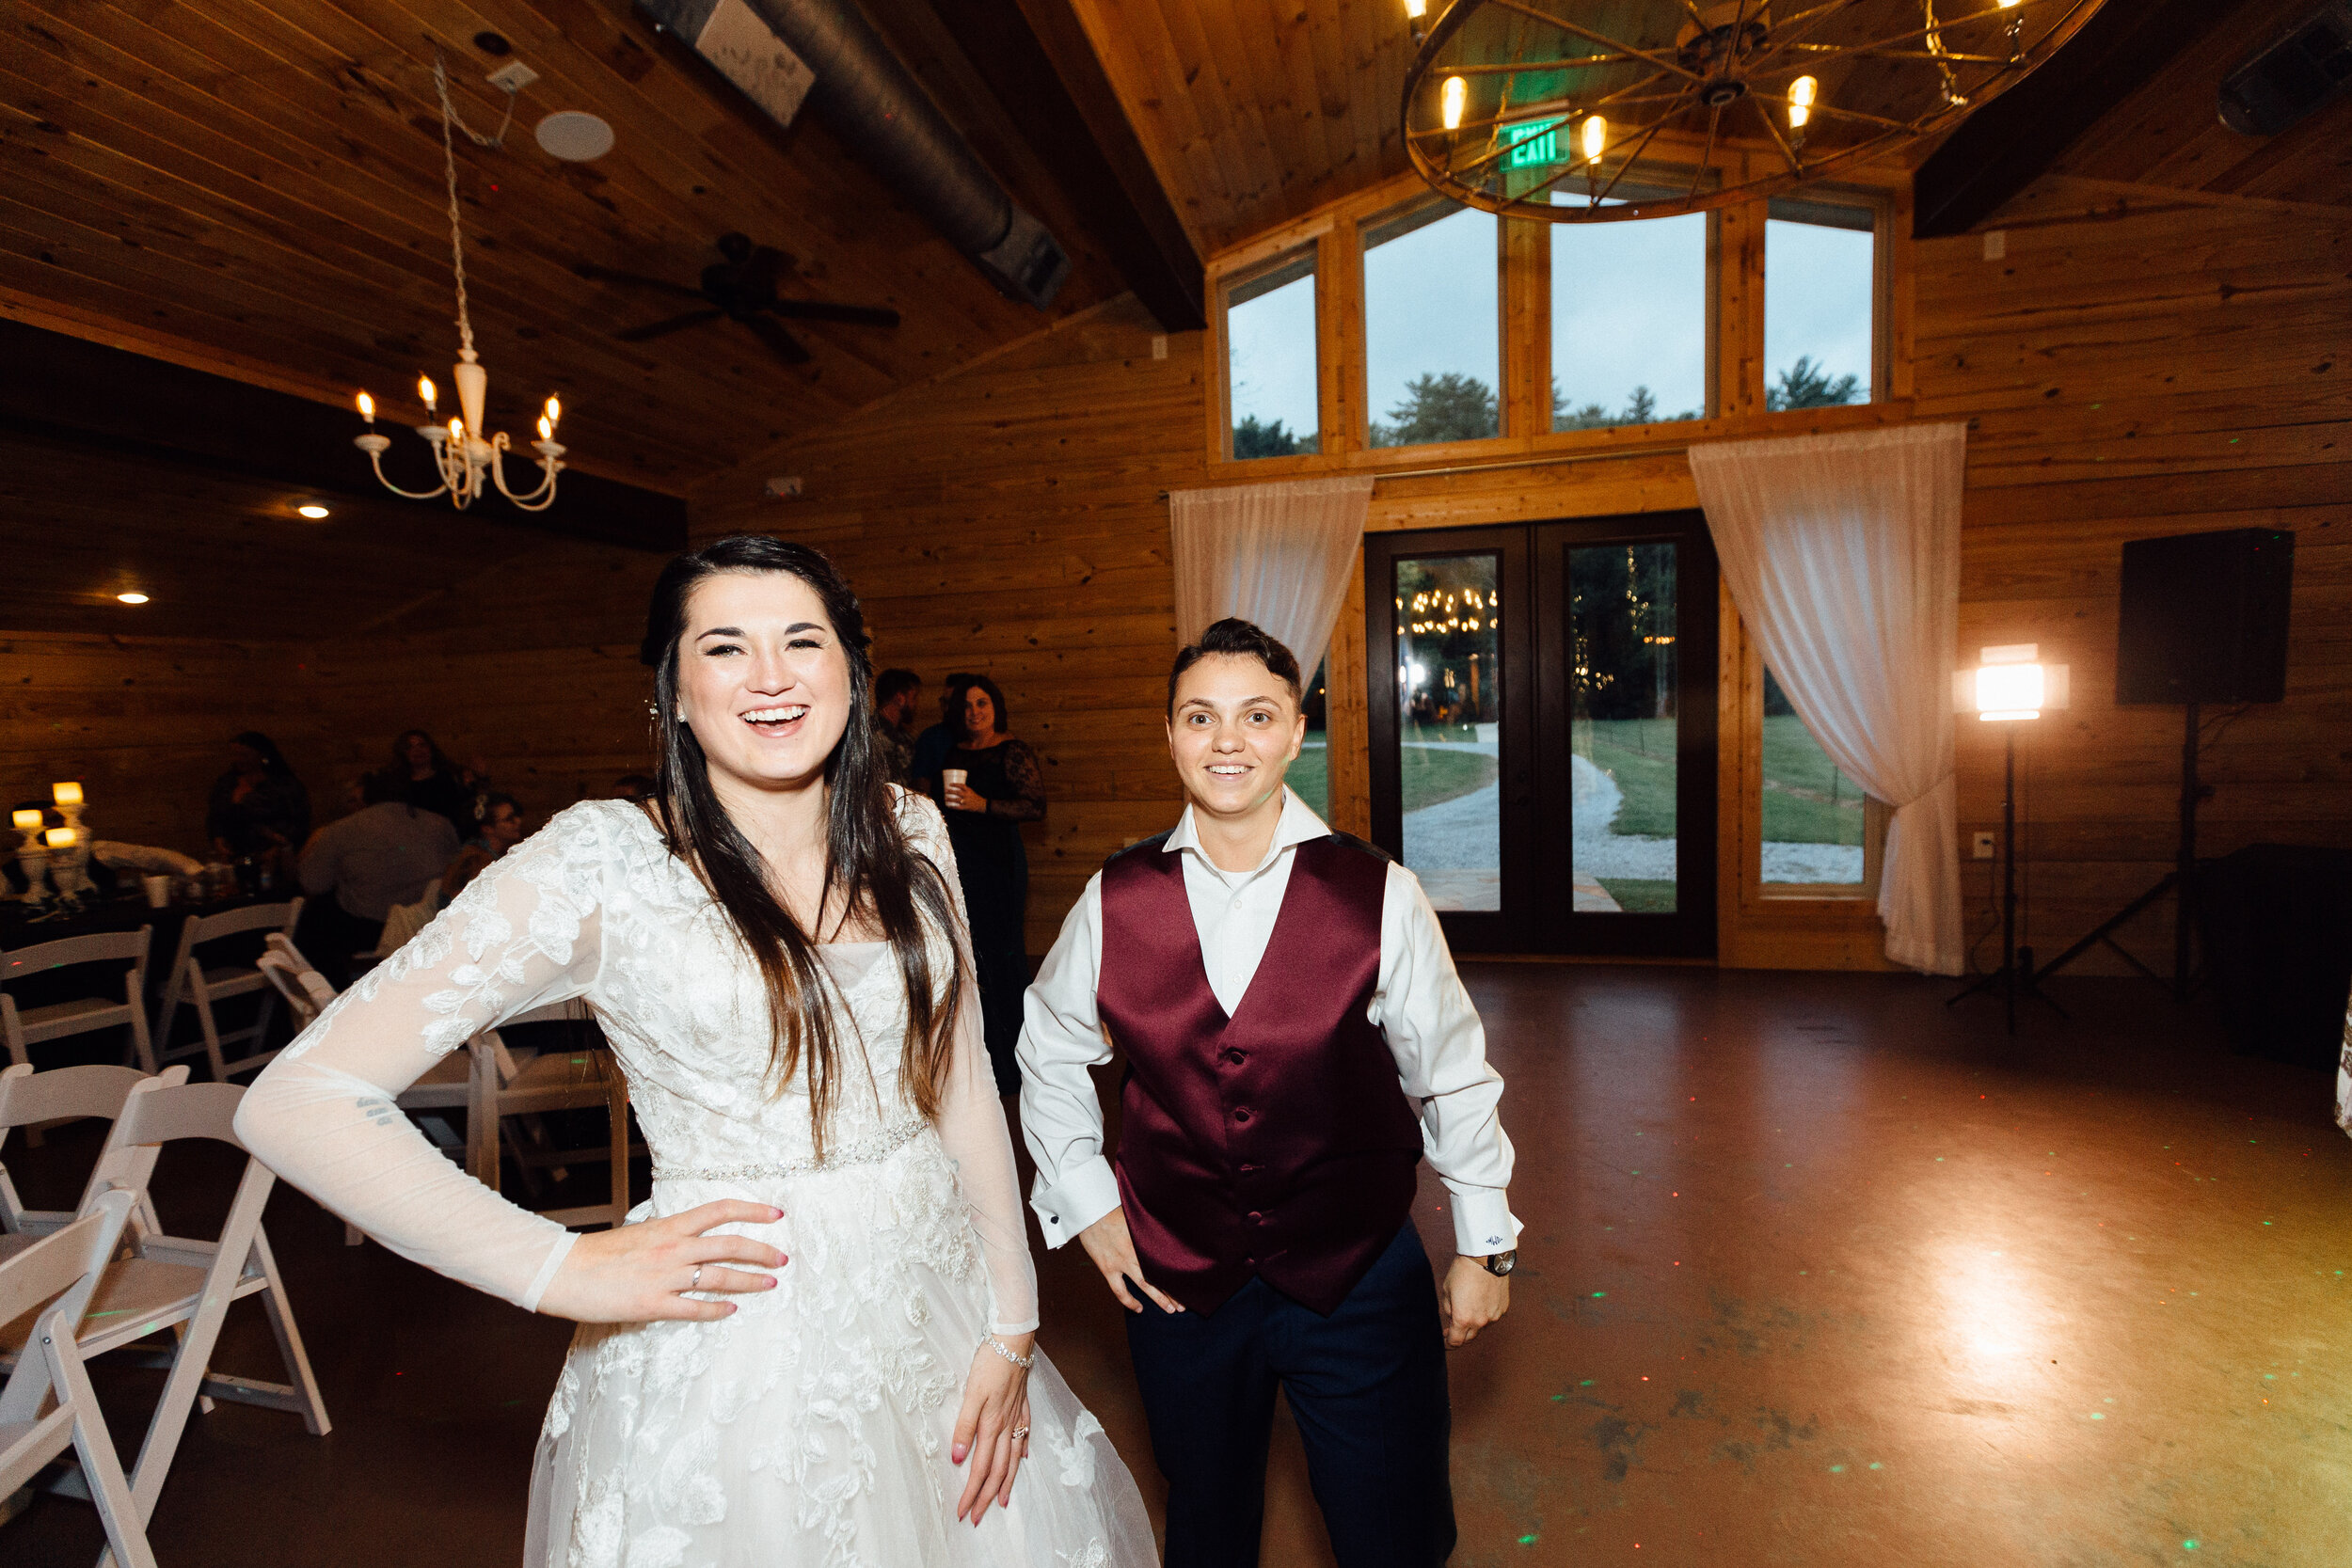 atlanta_wedding_photographers_georgia_same_sex_rustic_barn_farm_lesbian_weddings_inclusive_3242.jpg